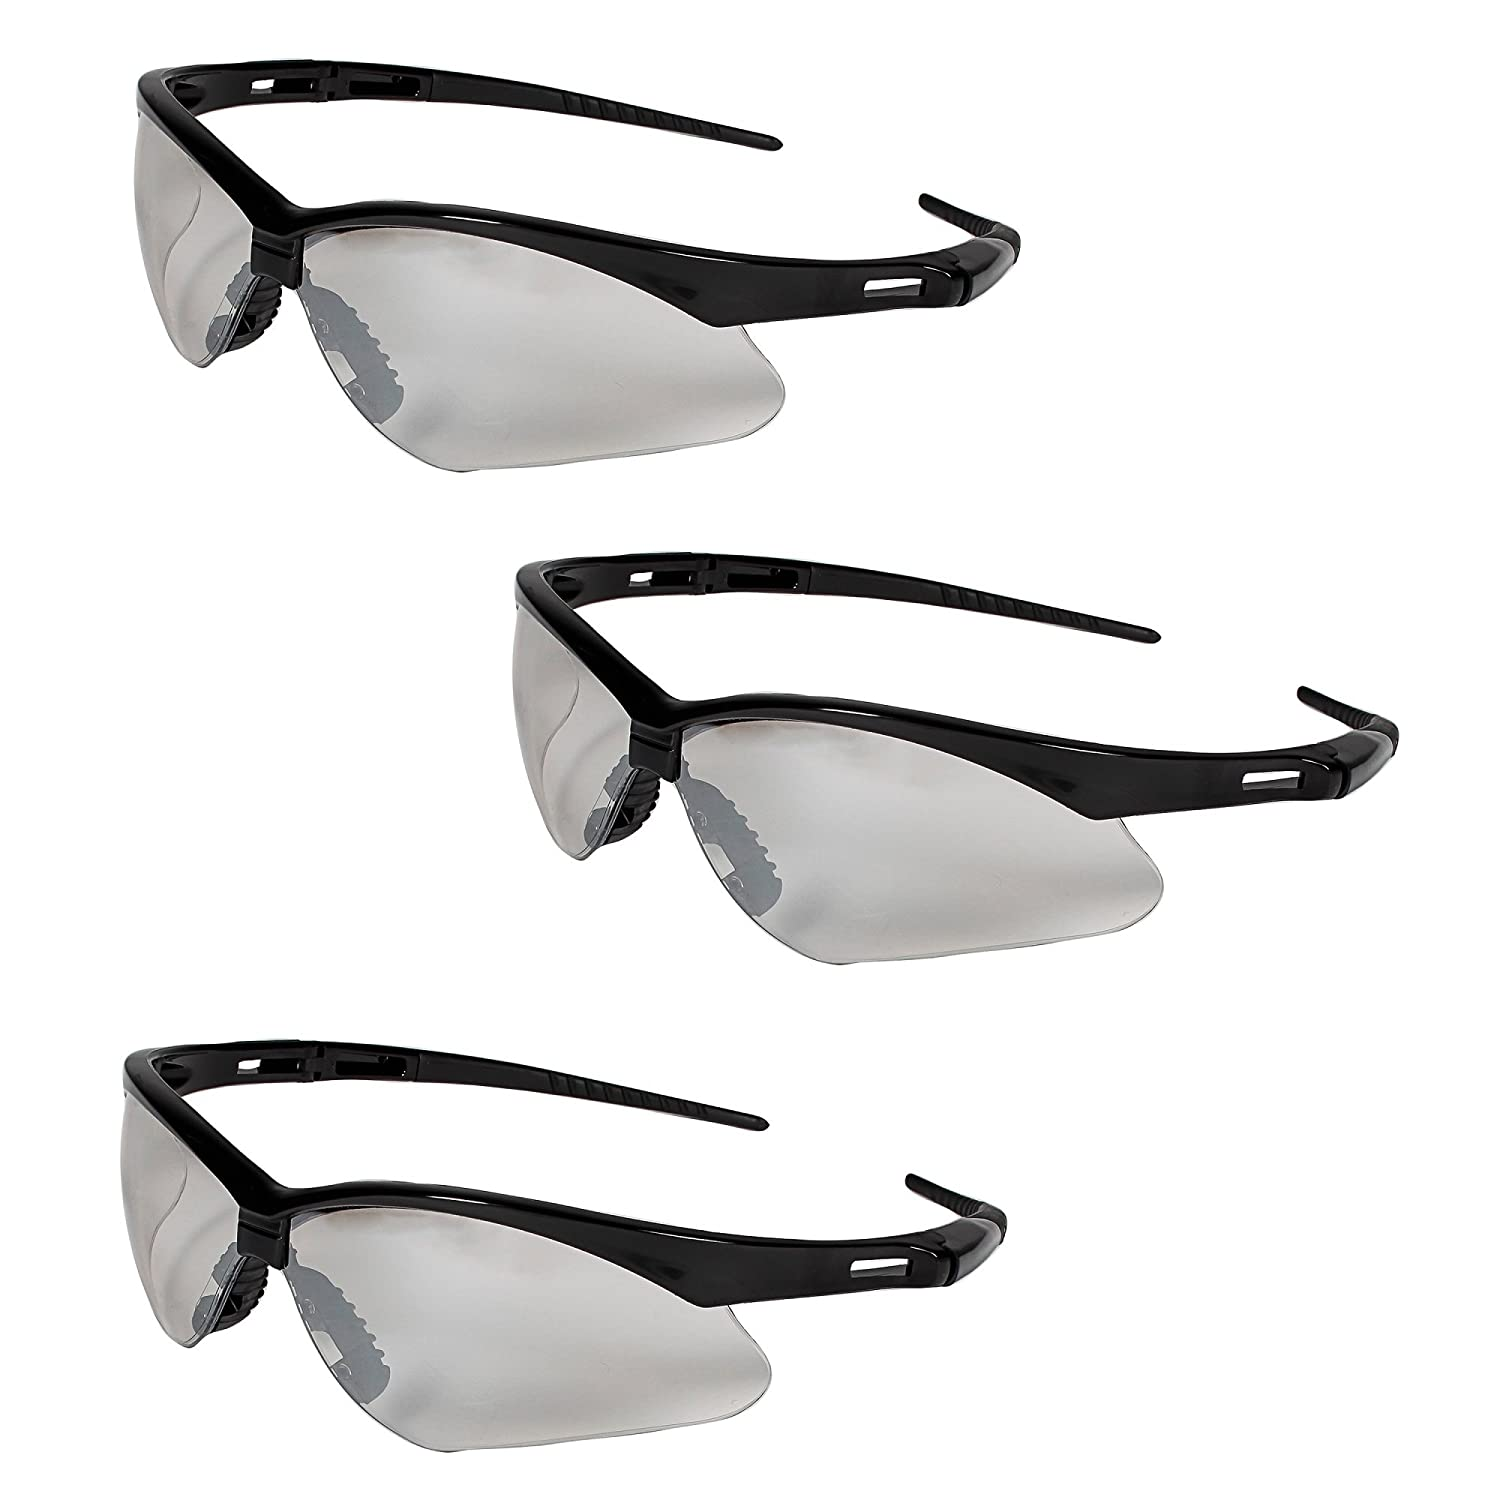 098ad618ff2 Jackson Safety V30 25685 Nemesis Safety Glasses 3000357 (3 Pair) (Black  Frame with Indoor Outdoor Lens) - - Amazon.com